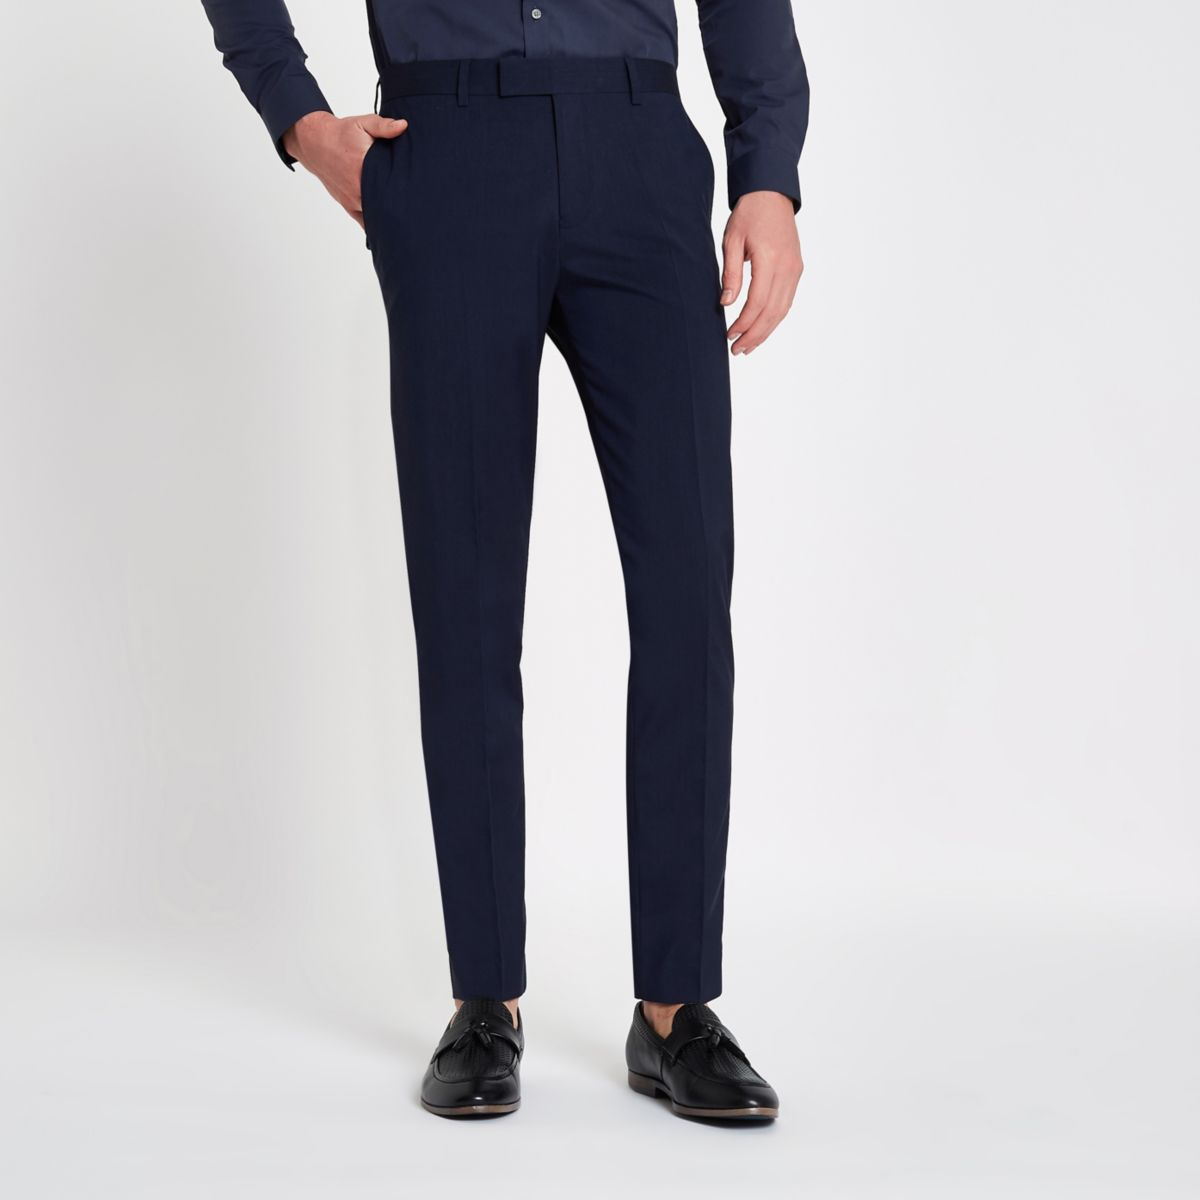 Navy stretch skinny fit suit pants